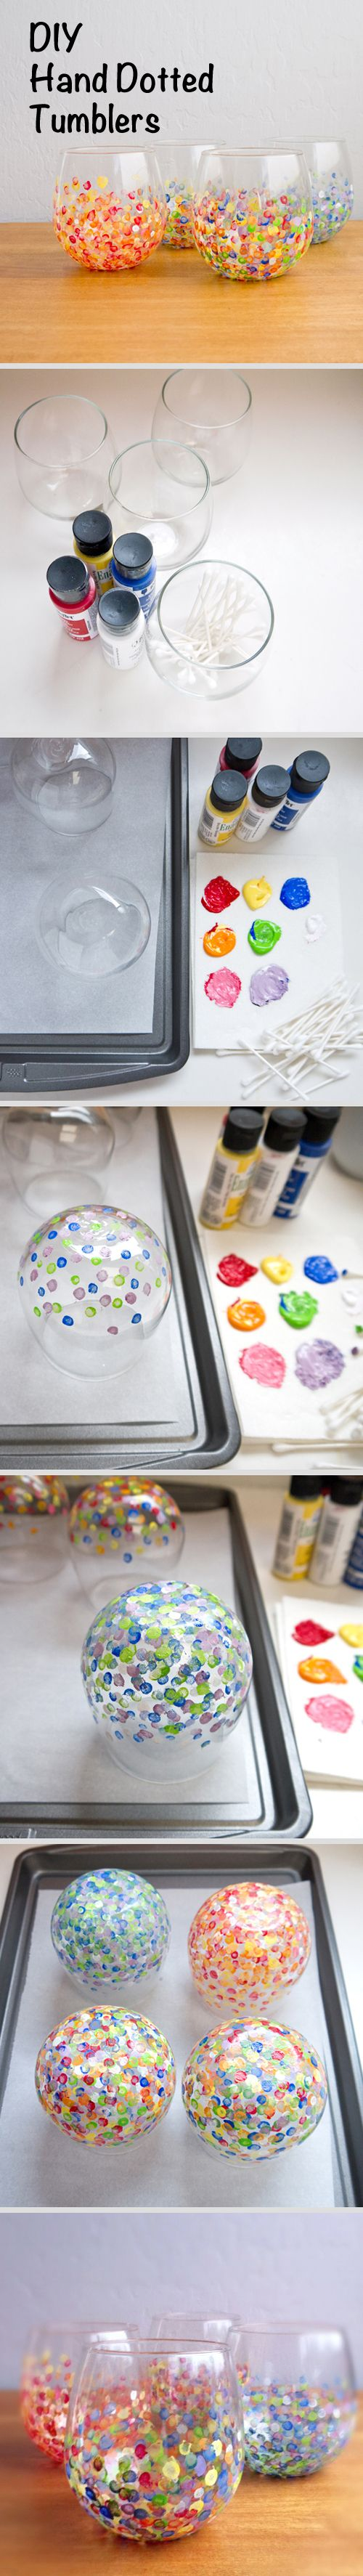 Hand dotted tumblers: Dot base of glasses with Q-Tip in paint. Flip to dry. Bake in 350 degree oven for 30 min.